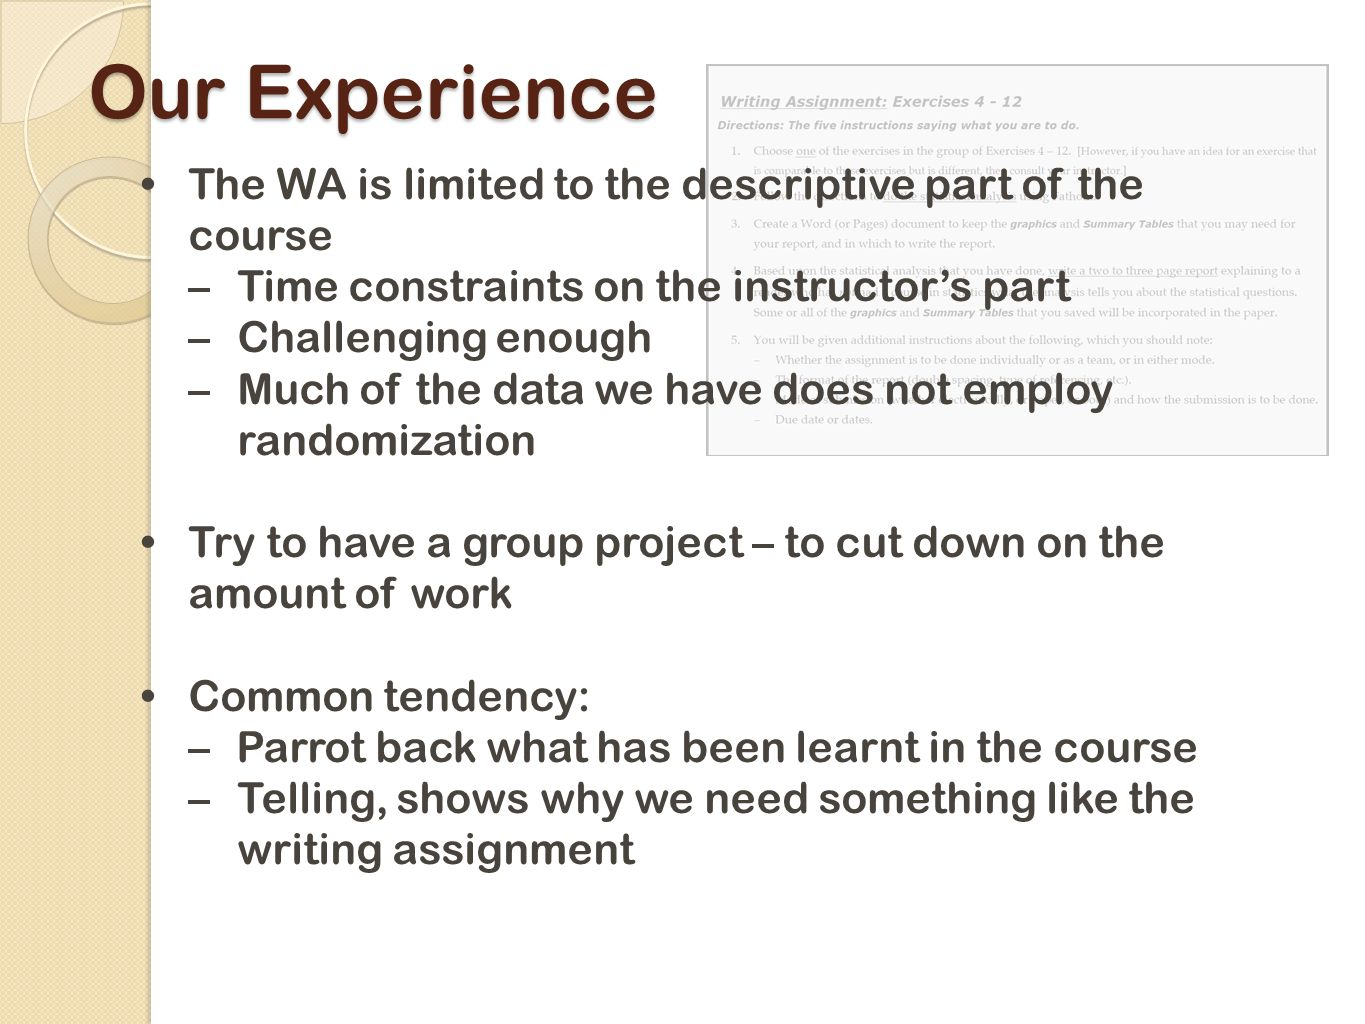 Our Experience The WA is limited to the descriptive part of the course –Time constraints on the instructor's part –Challenging enough –Much of the data we have does not employ randomization Try to have a group project – to cut down on the amount of work Common tendency: –Parrot back what has been learnt in the course –Telling, shows why we need something like the writing assignment